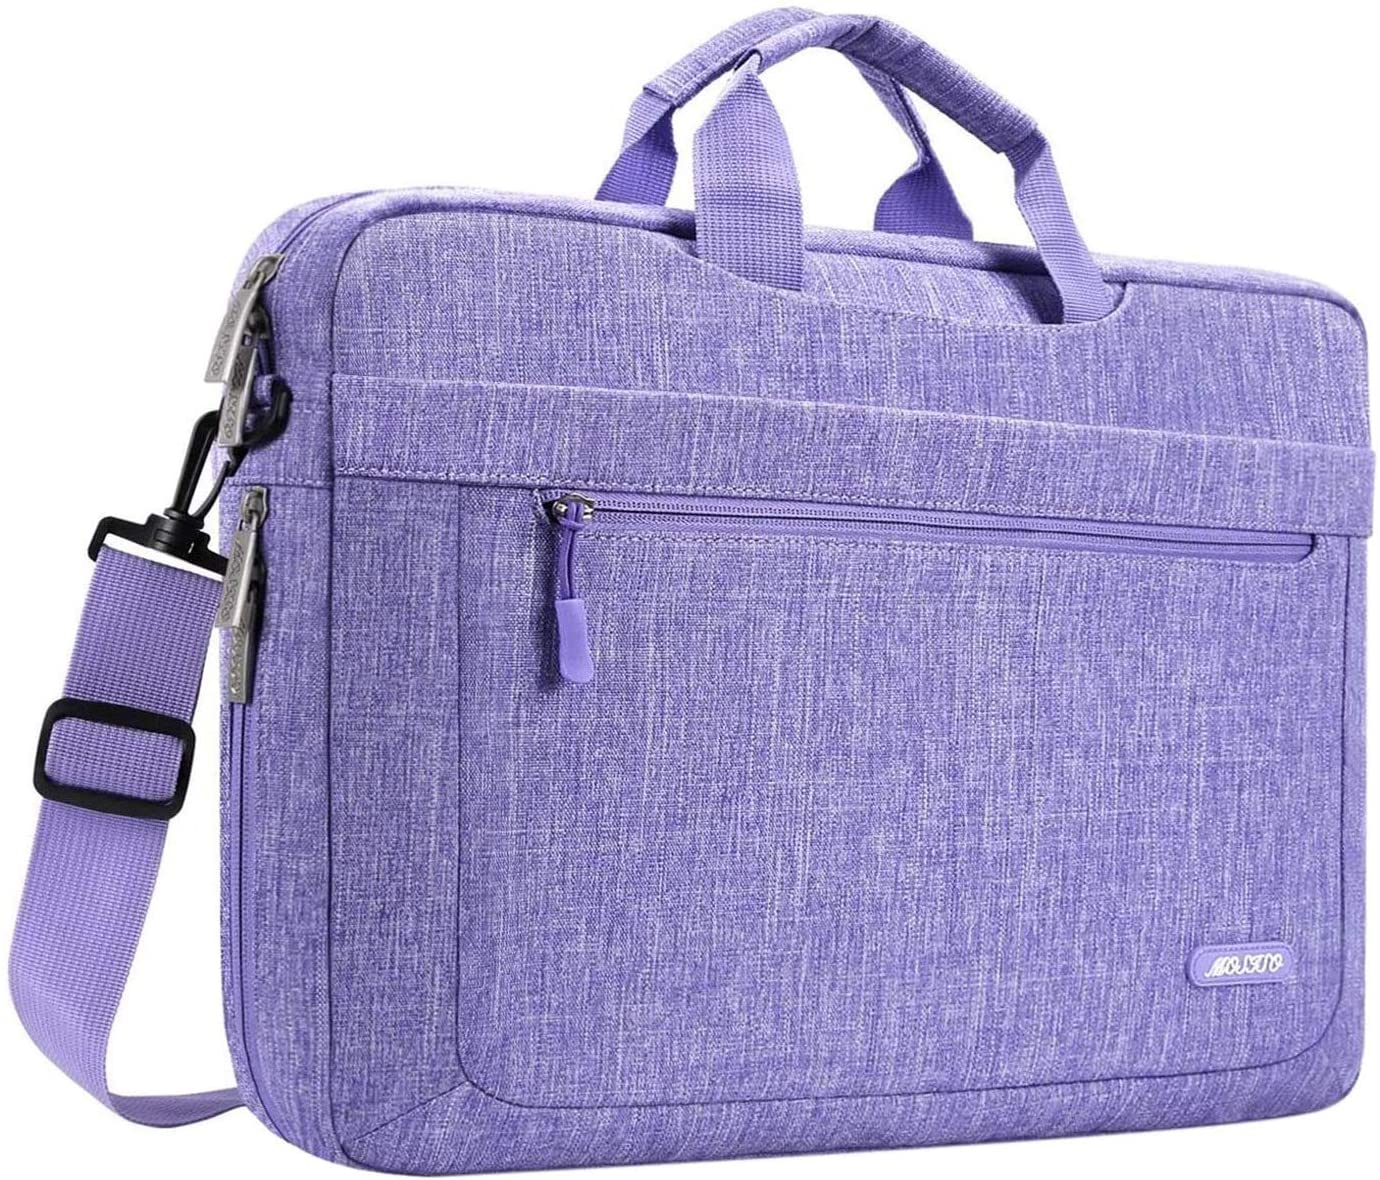 MOSISO Laptop Shoulder Bag Compatible Max 74% OFF with Pro Air Import 13 in MacBook